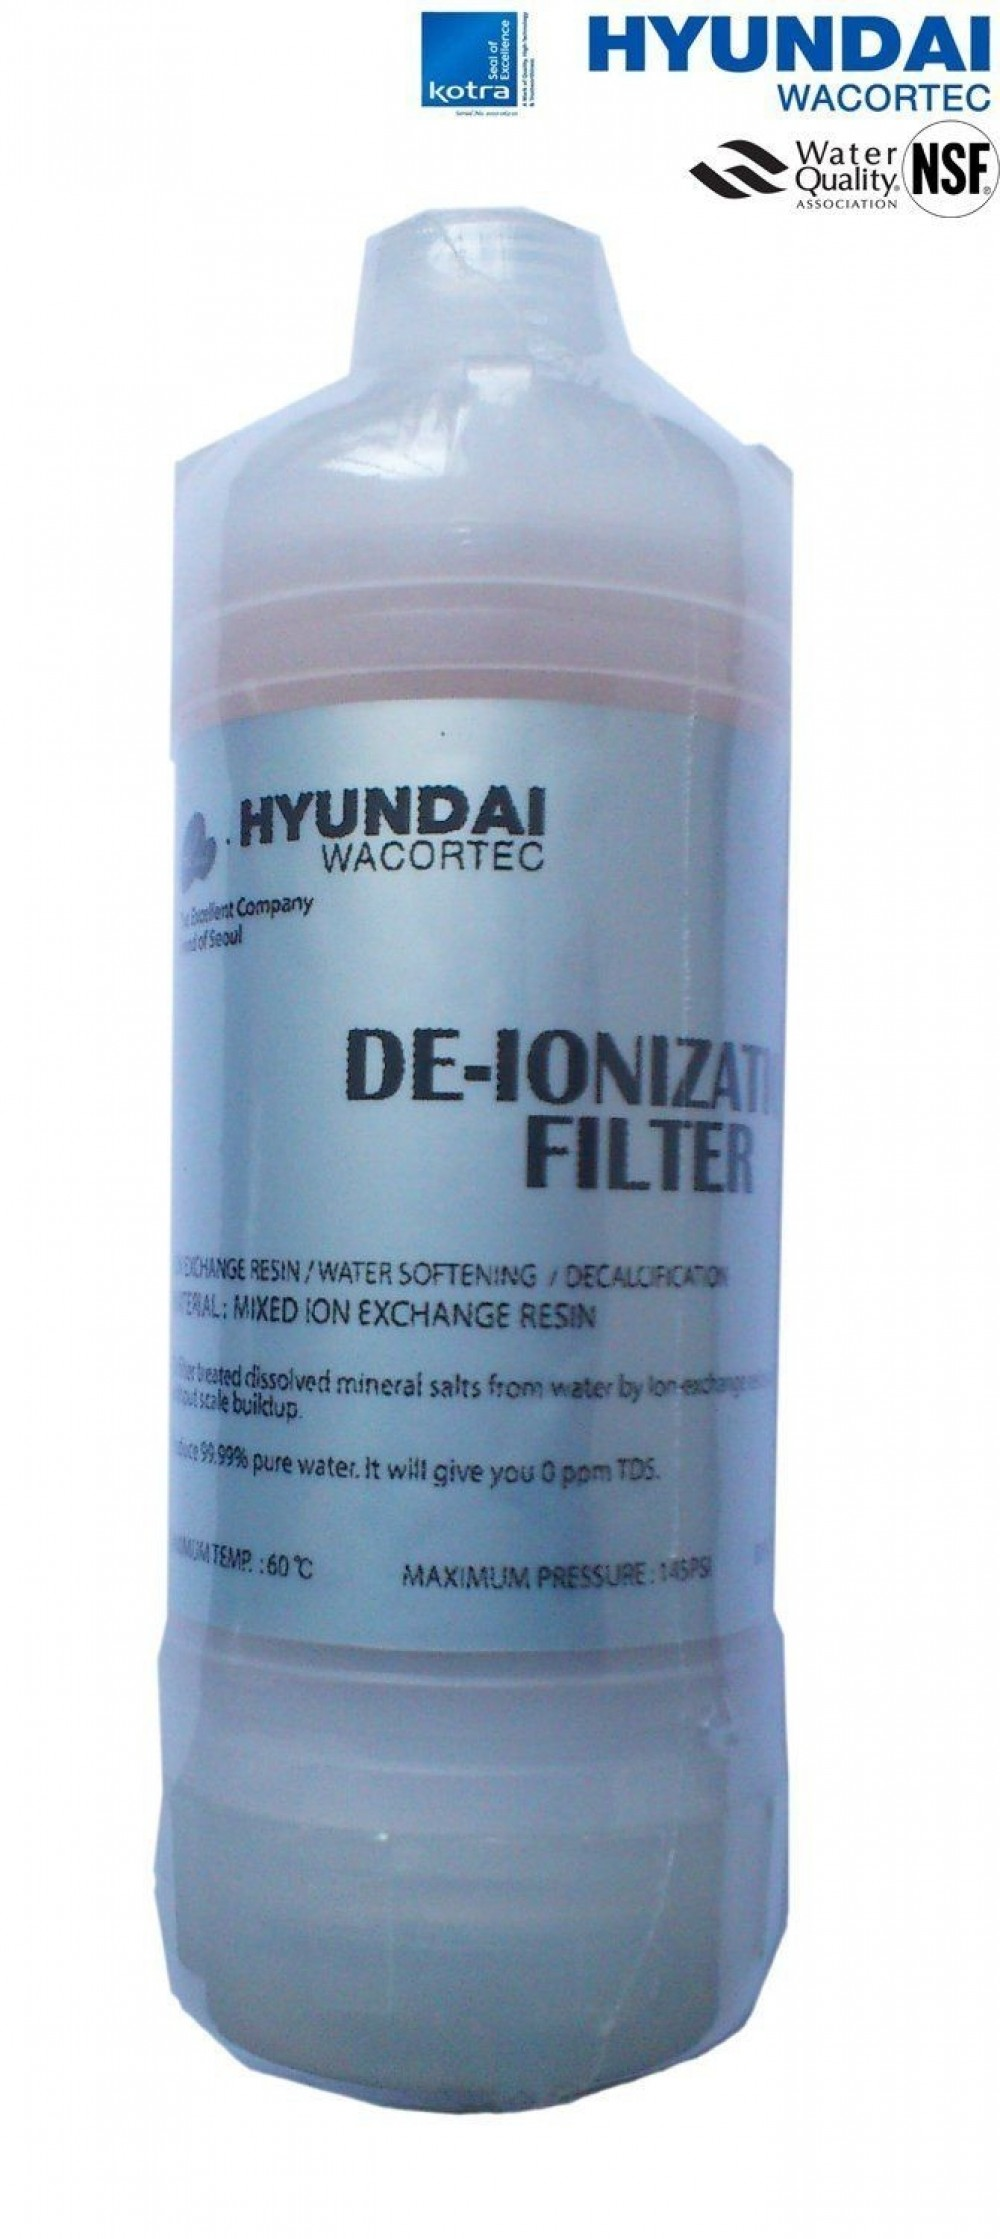 hyundai bidet seat water filter